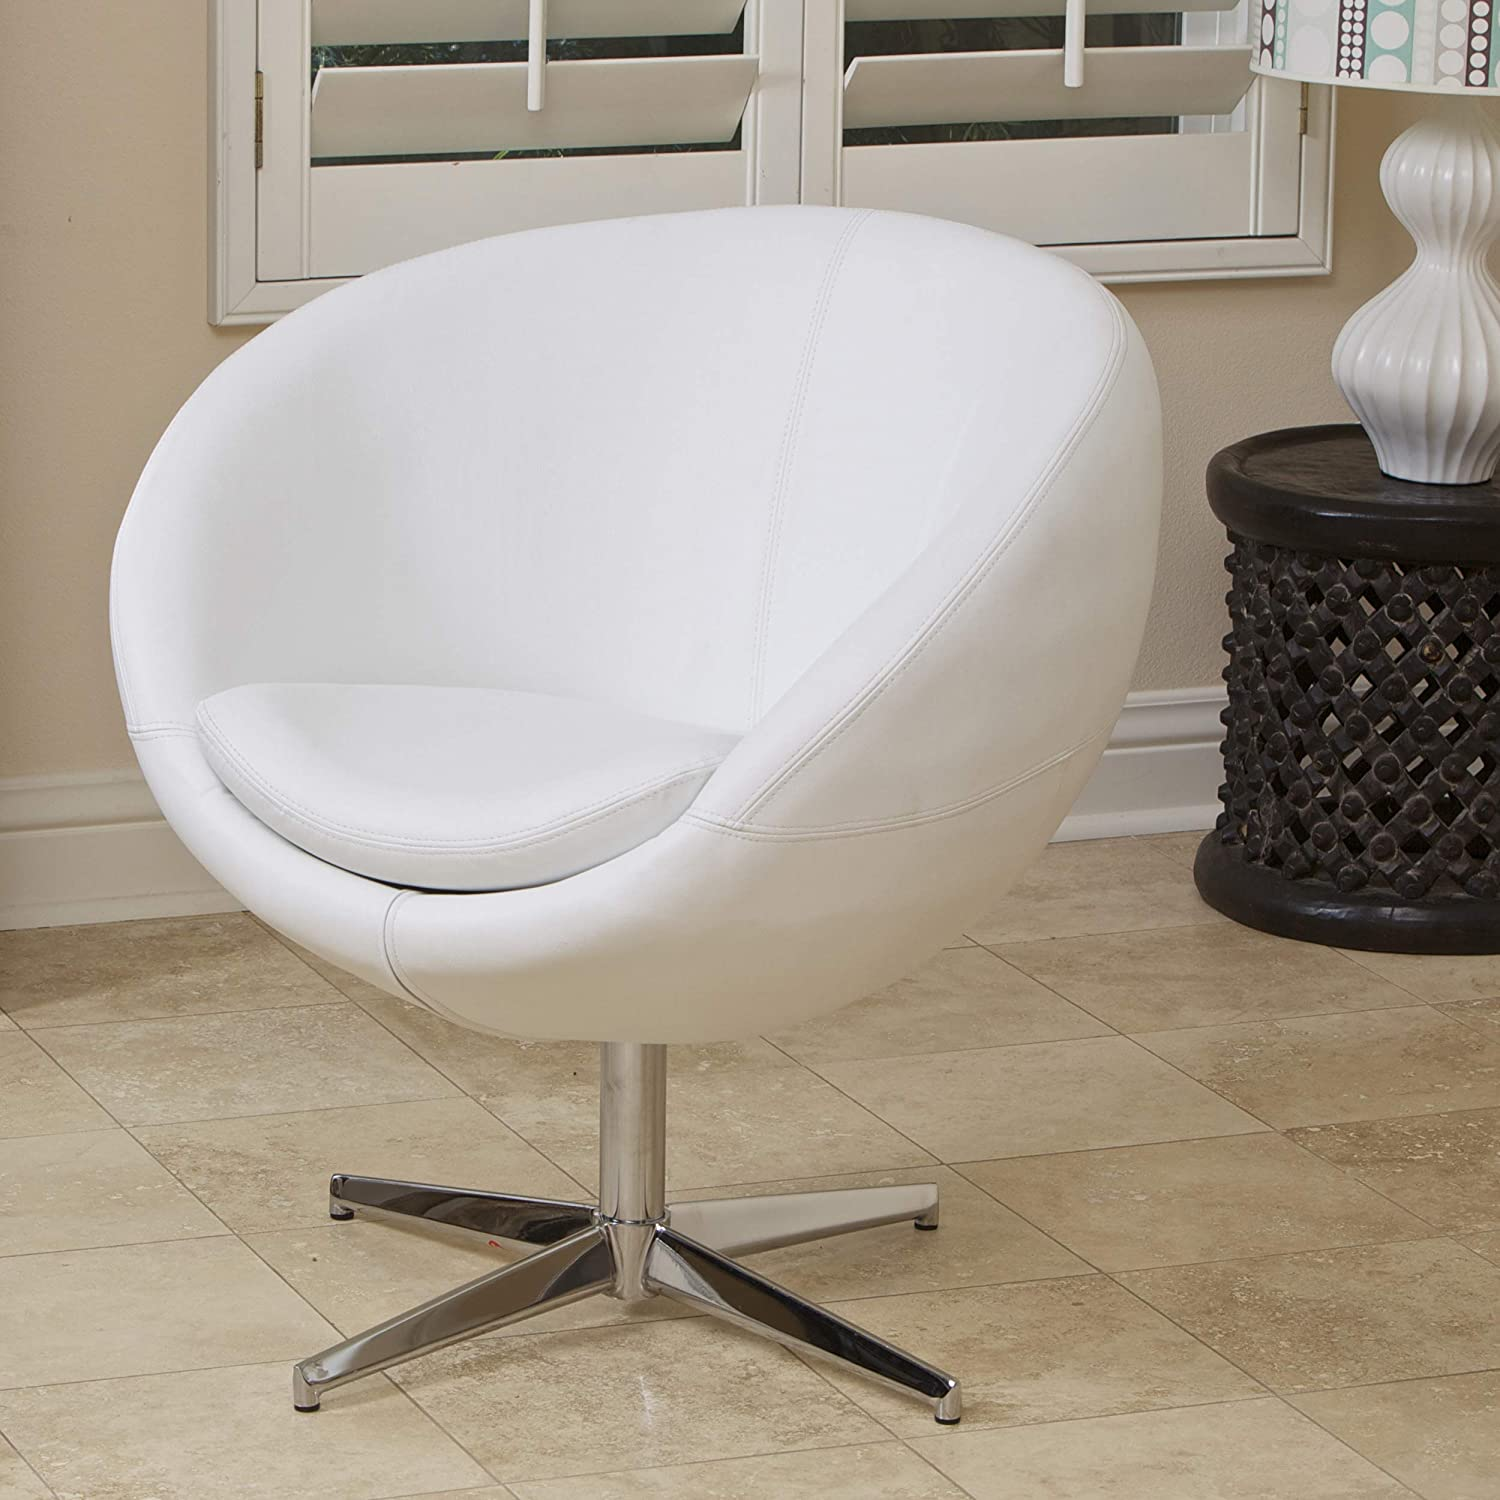 Christopher Knight Home CKH Modern Leather Roundback Chair, White